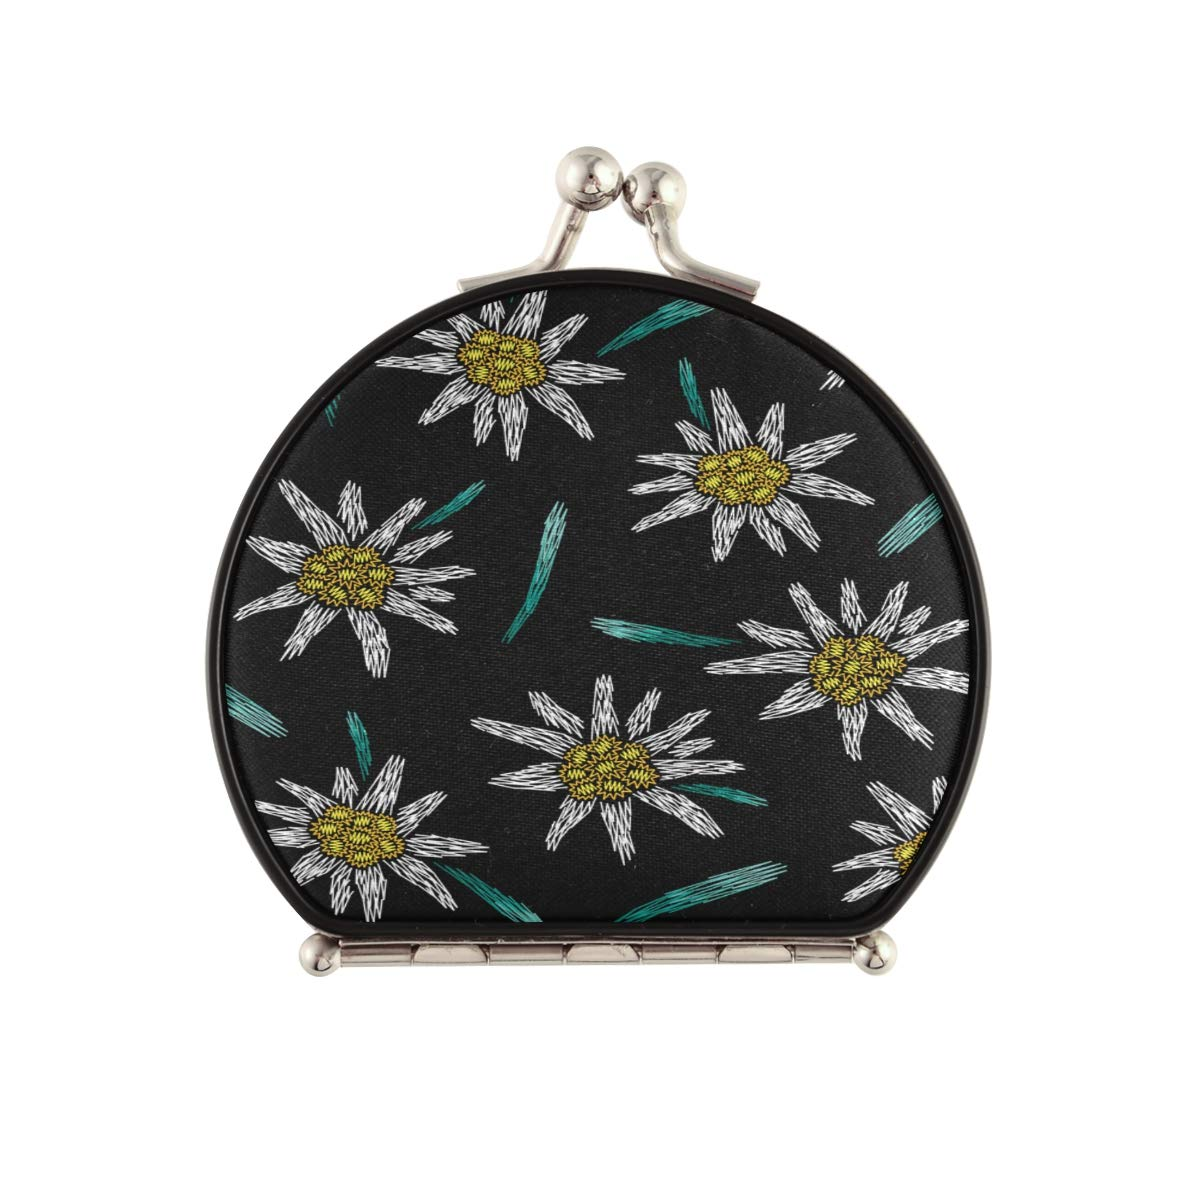 Magnifying Compact Cosmetic Mirror Pattern Sale item Ede Selling Floral Embroidery